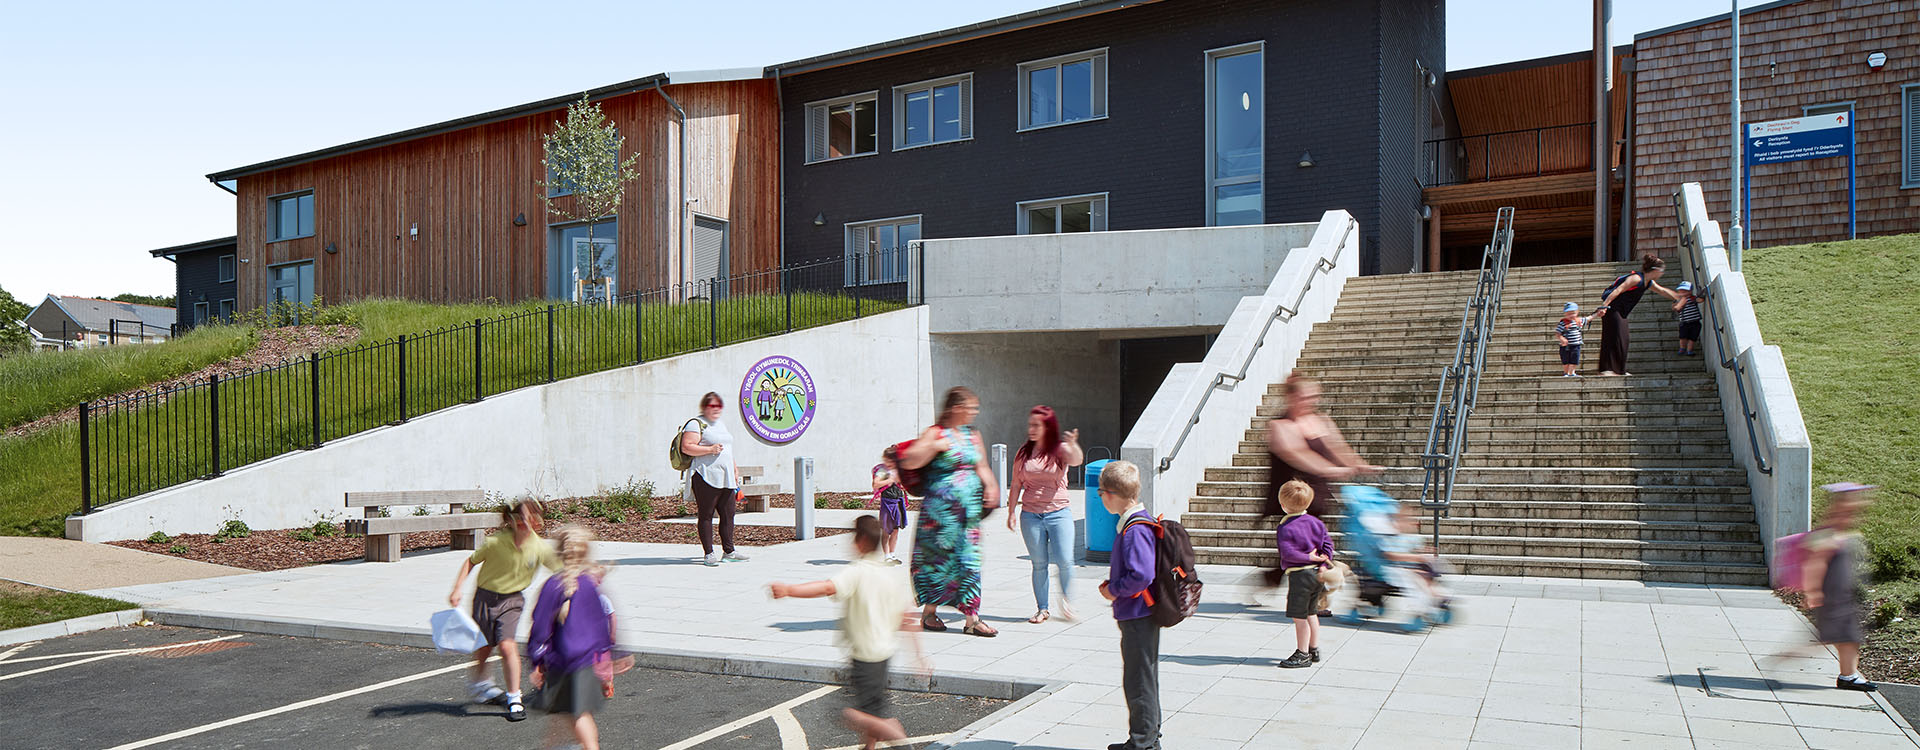 Bnr-Project-UK-Welsh-Schools